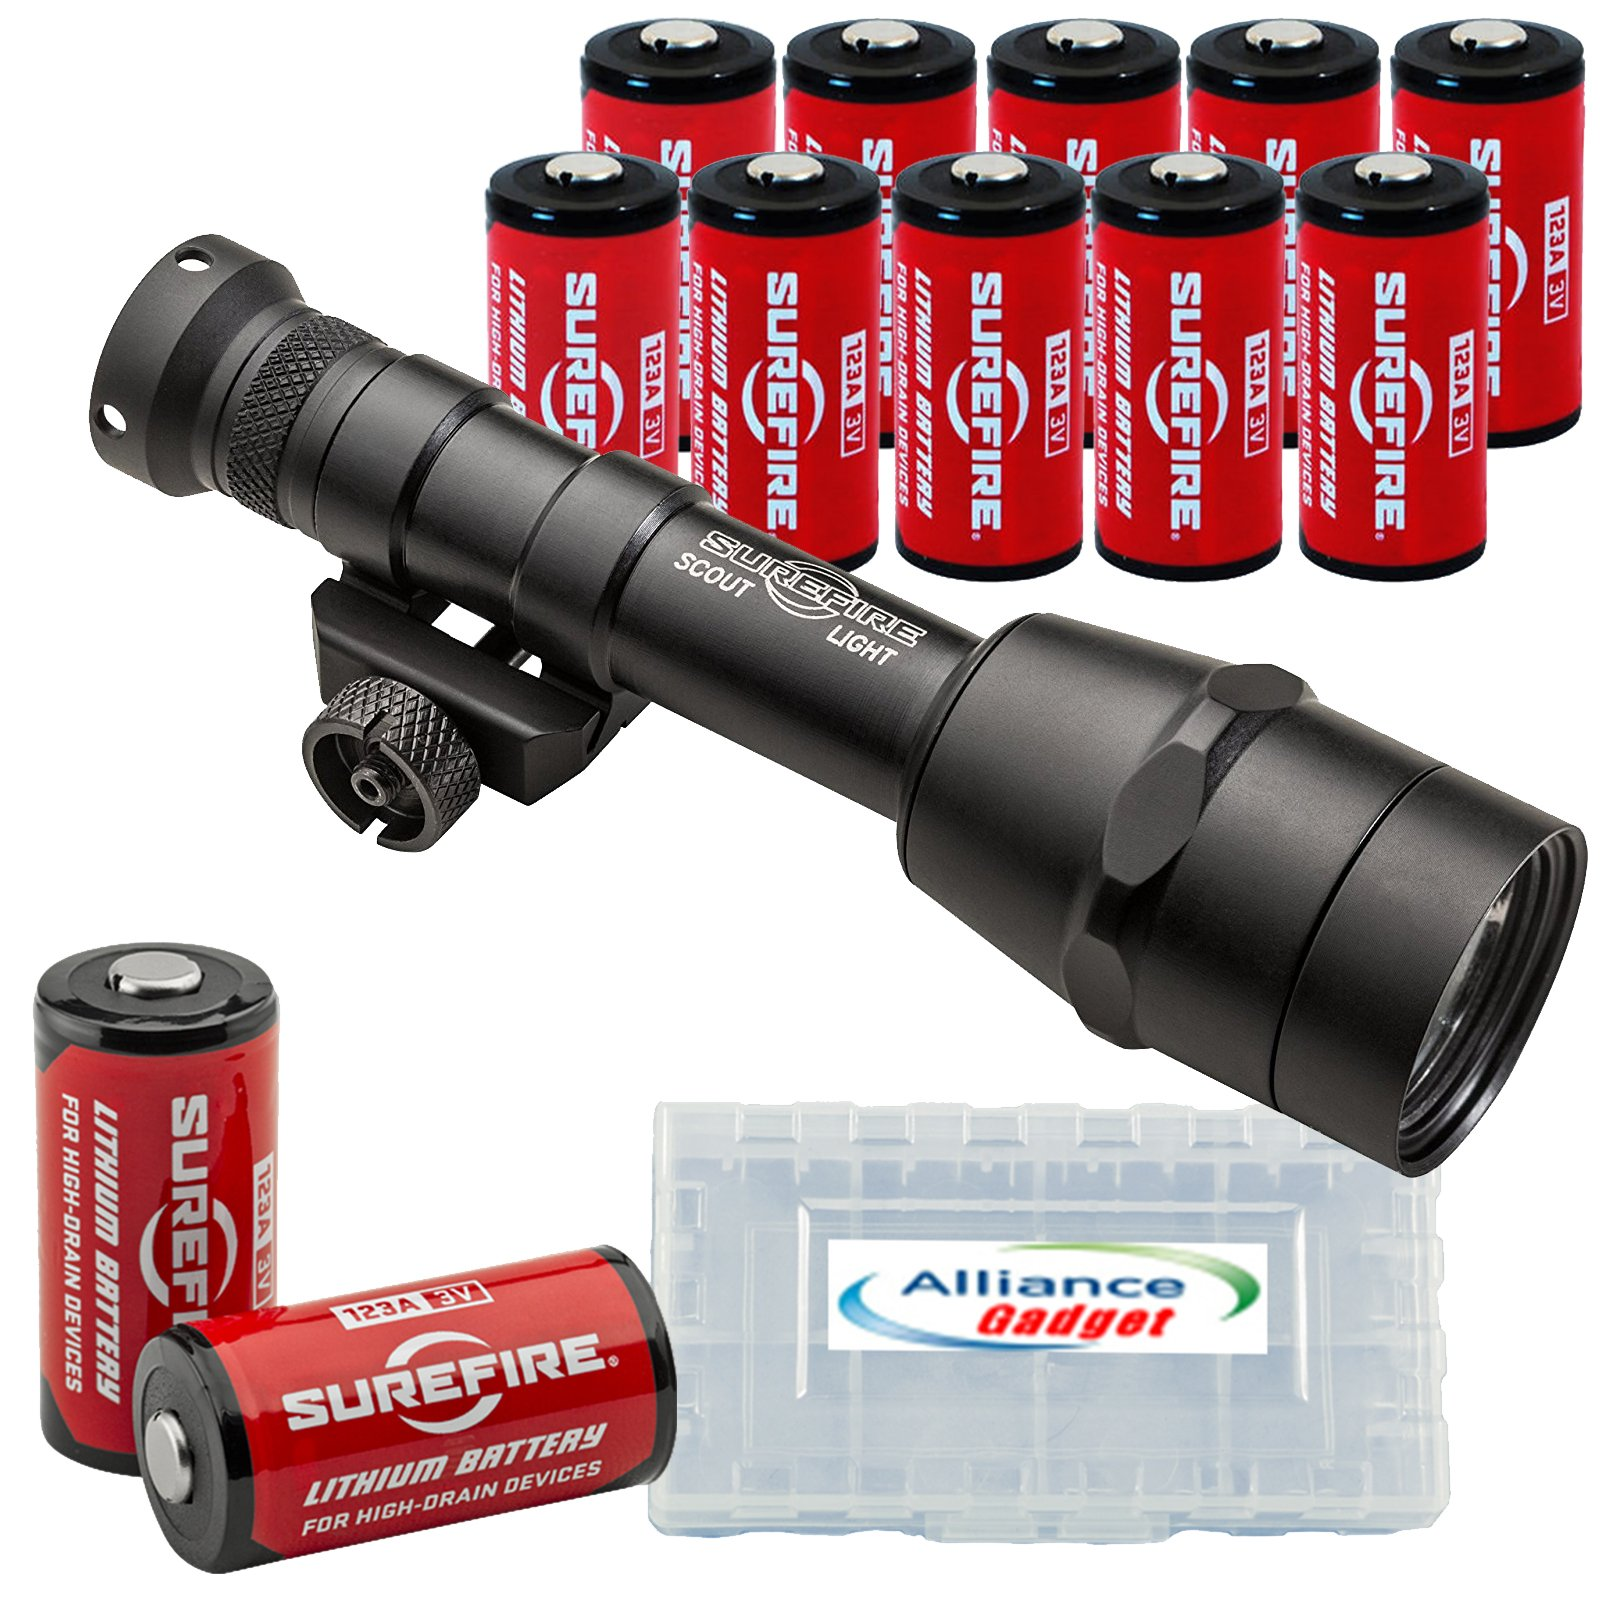 Surefire M600IB Scout Light Auto Adjusting IntelliBeam LED WeaponLight with 12 Extra Surefire CR123A Batteries and 3 Alliance Gadget Battery Cases by SureFire